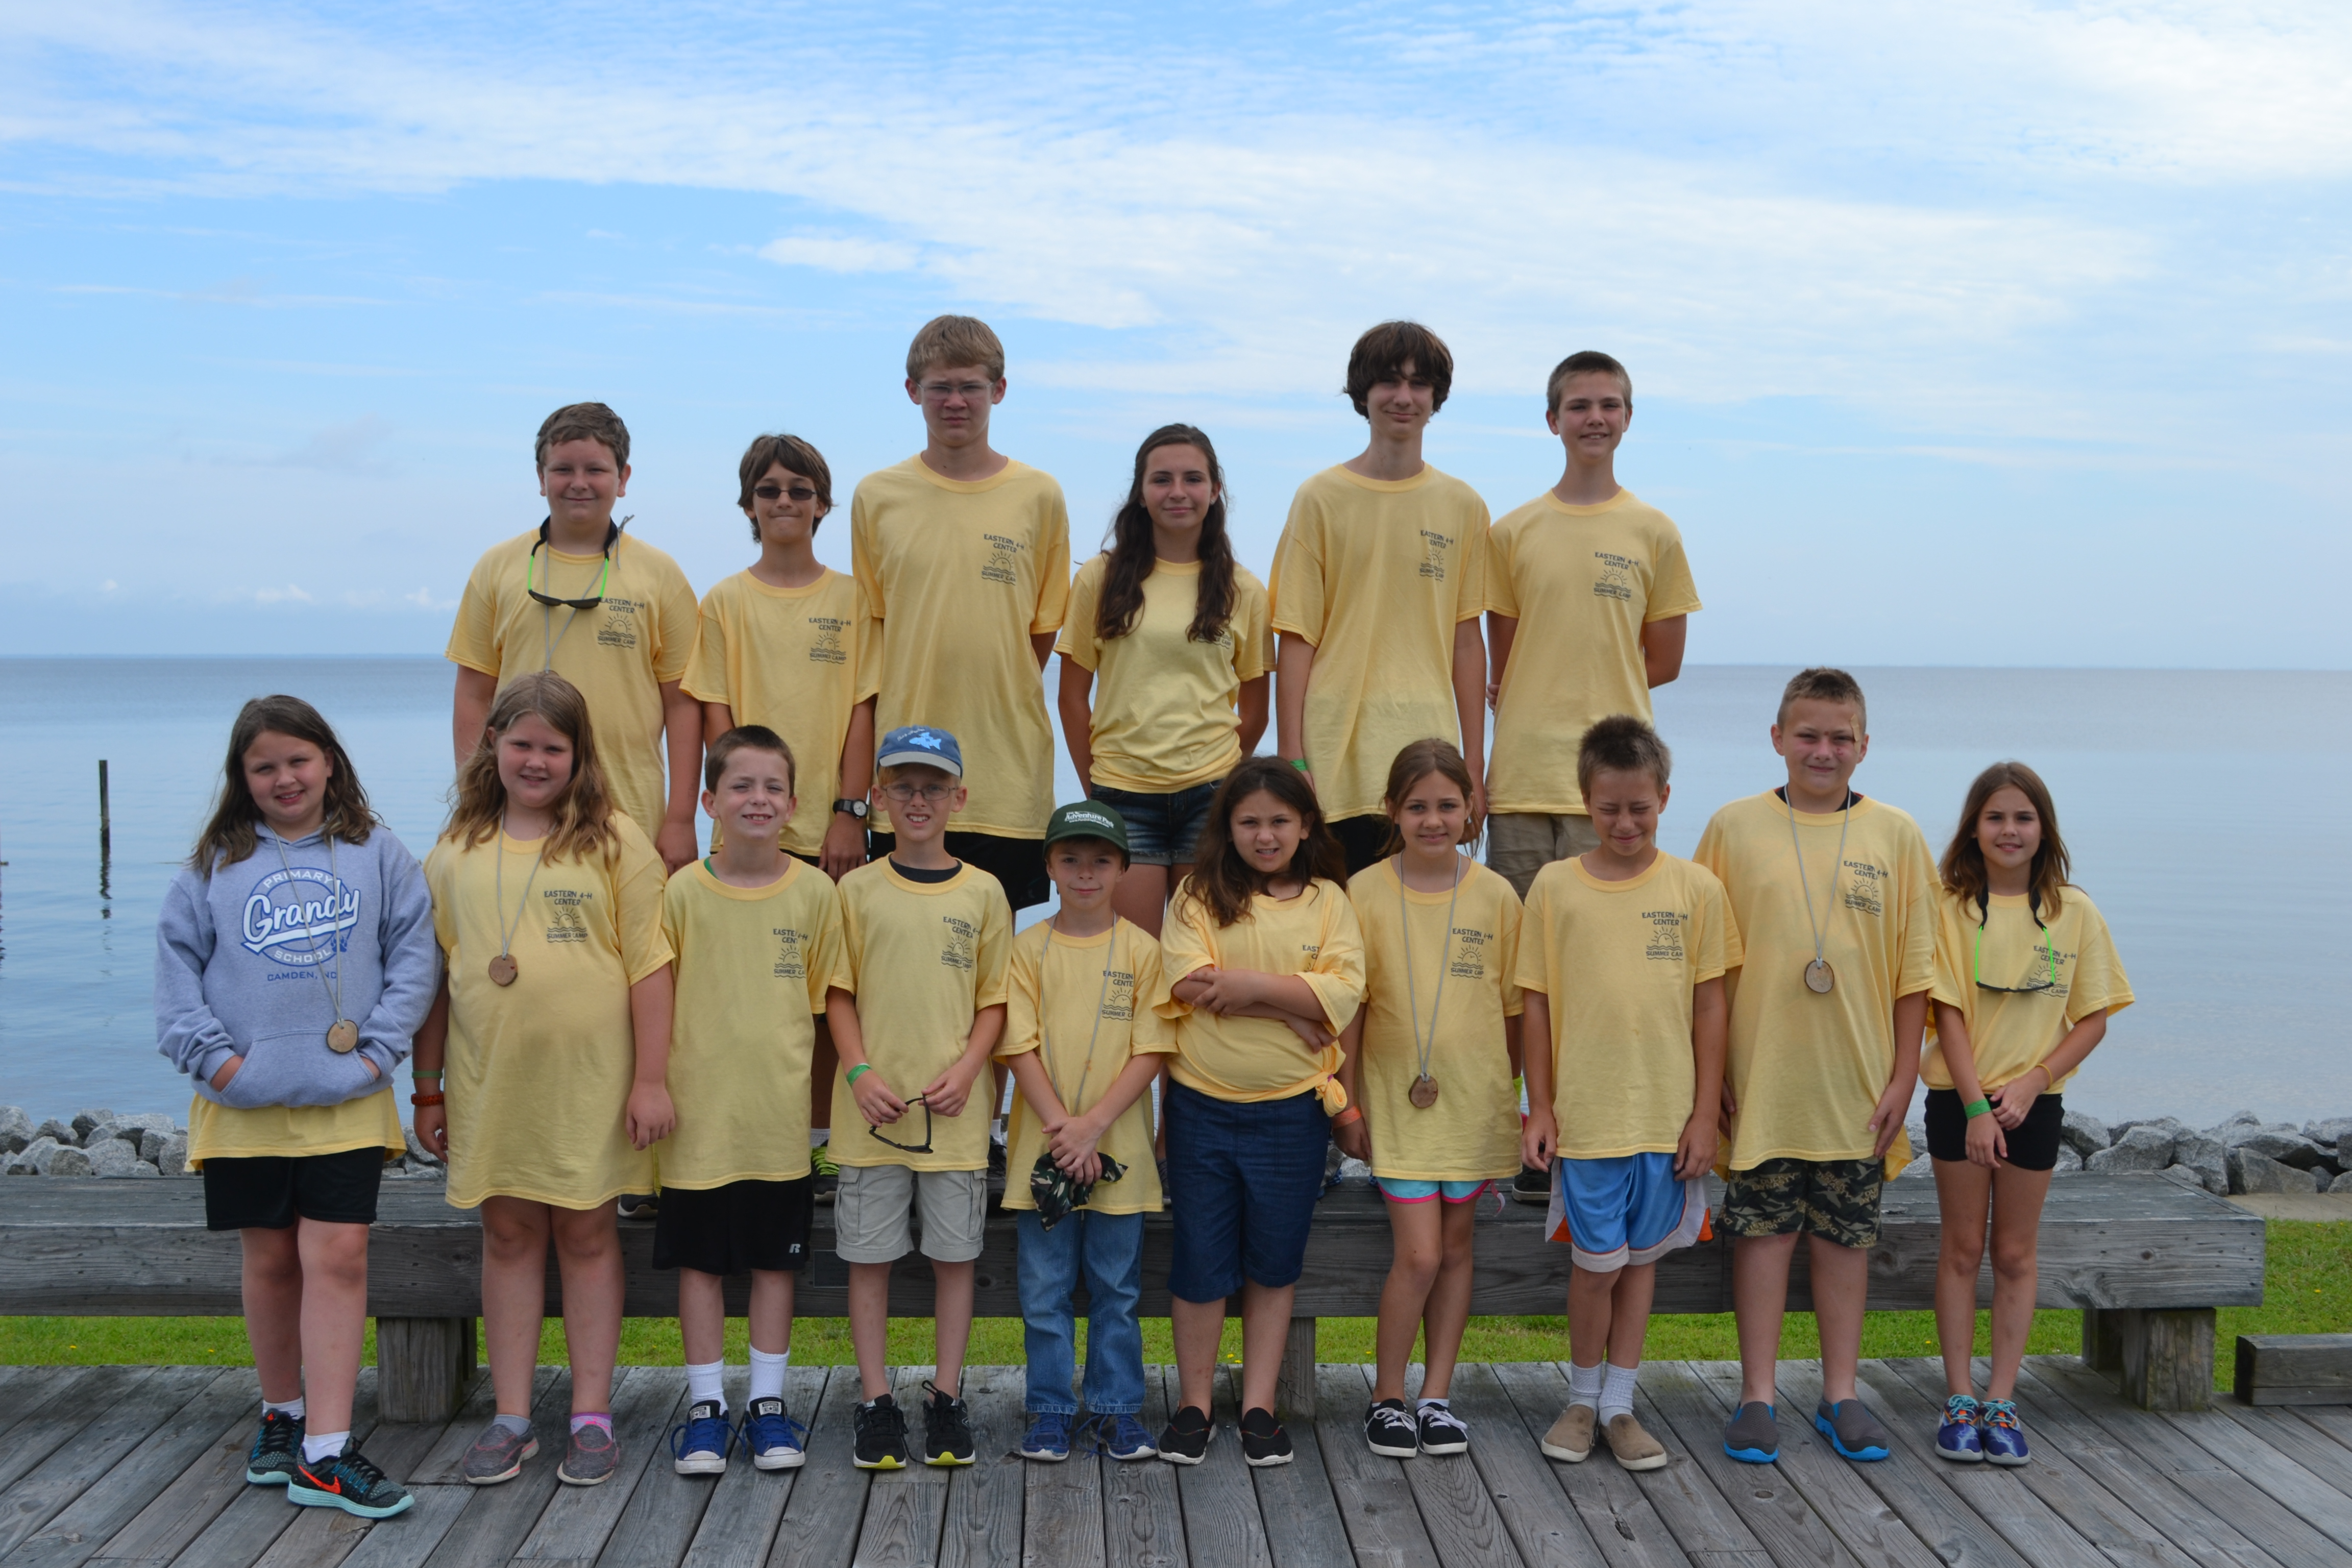 4-H Campers in matching t-shirts